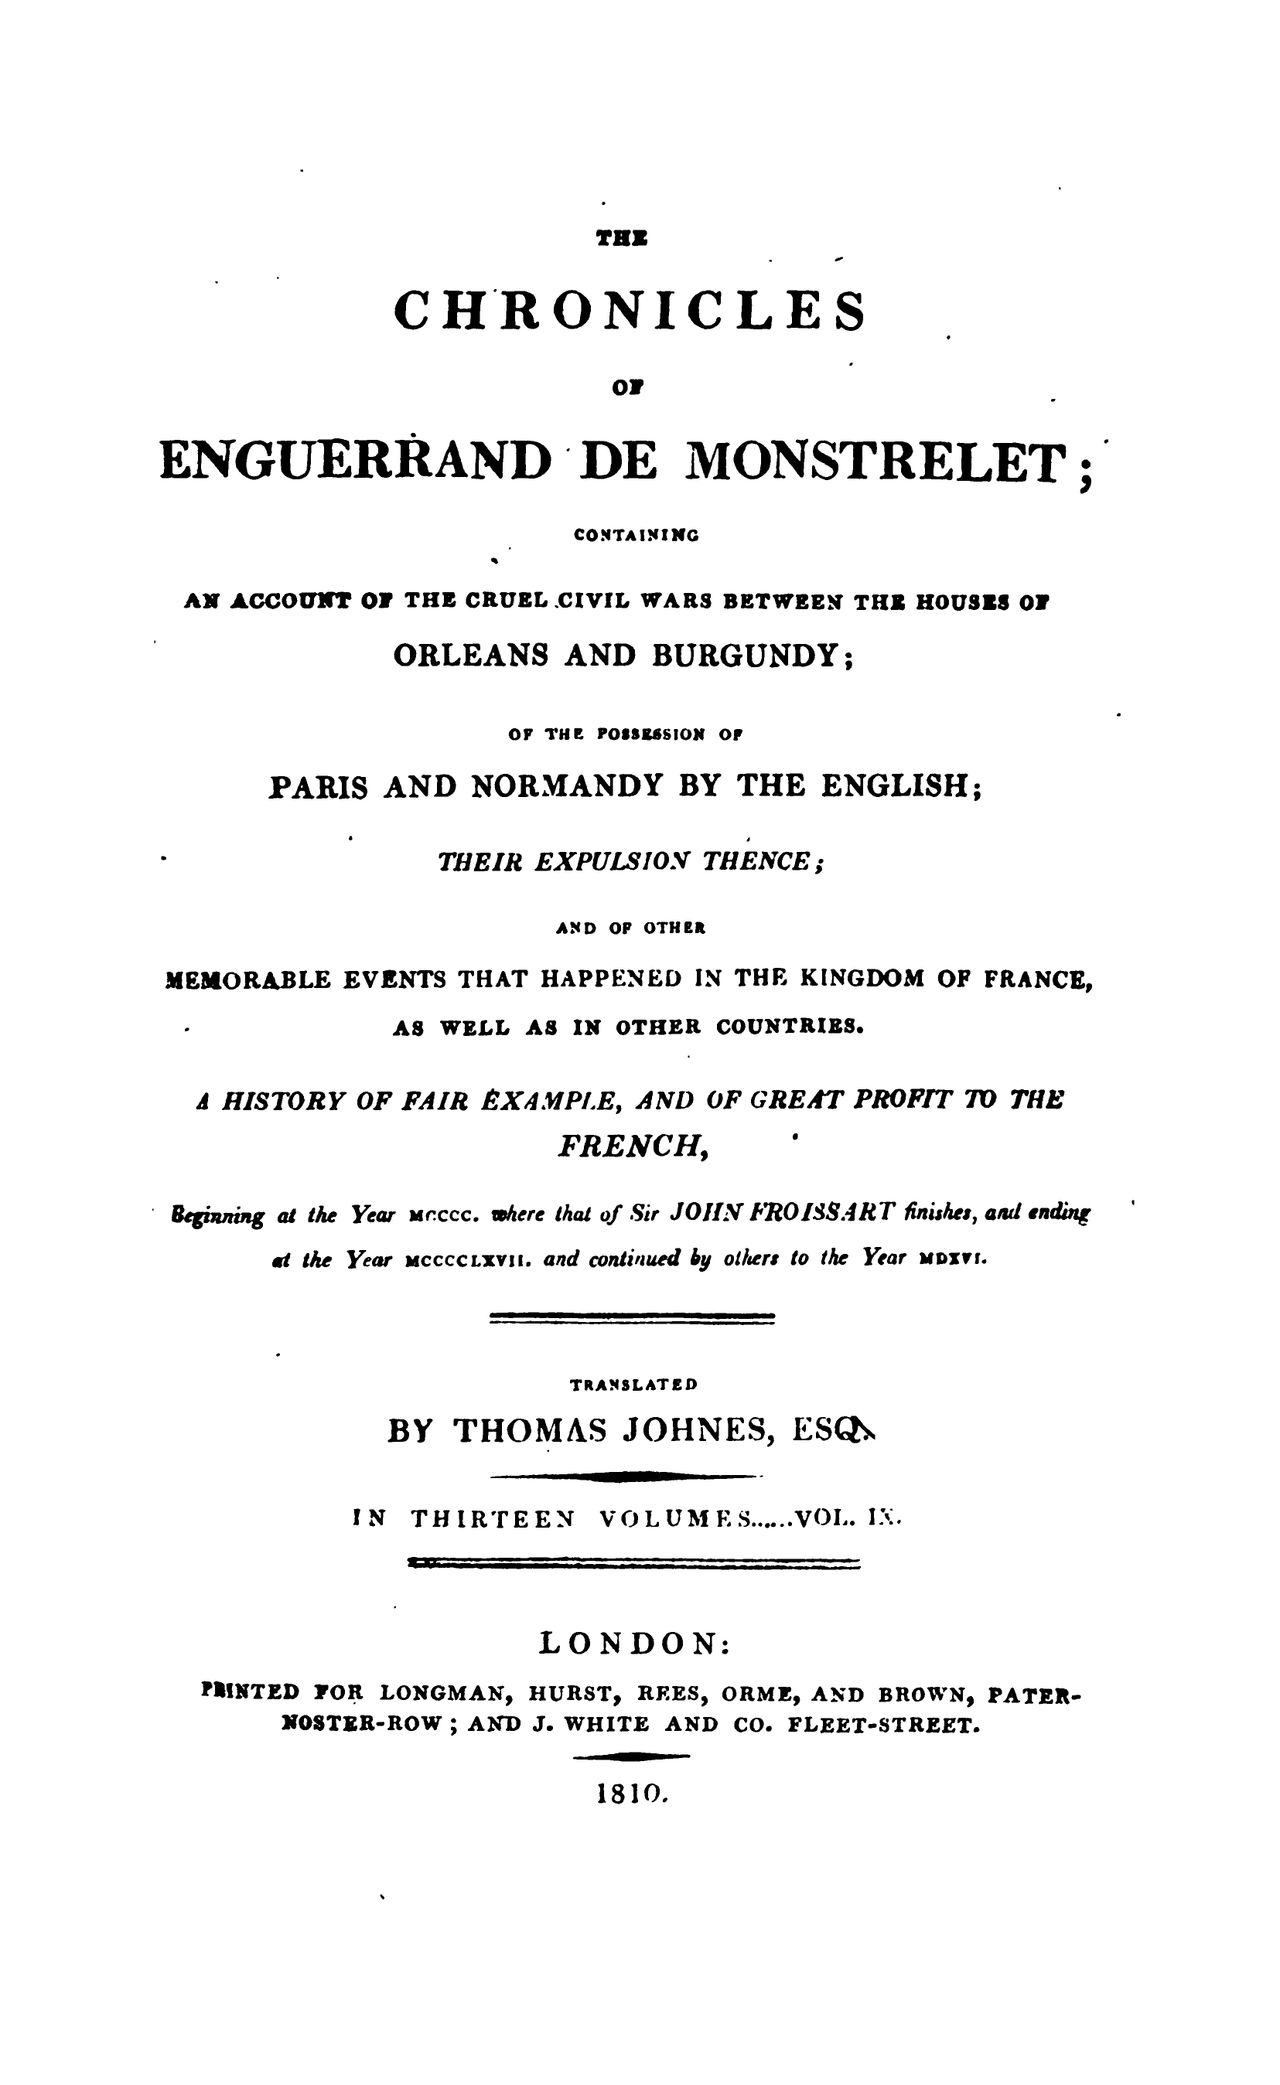 Enguerrand de Monstrelet chronicle vol.9